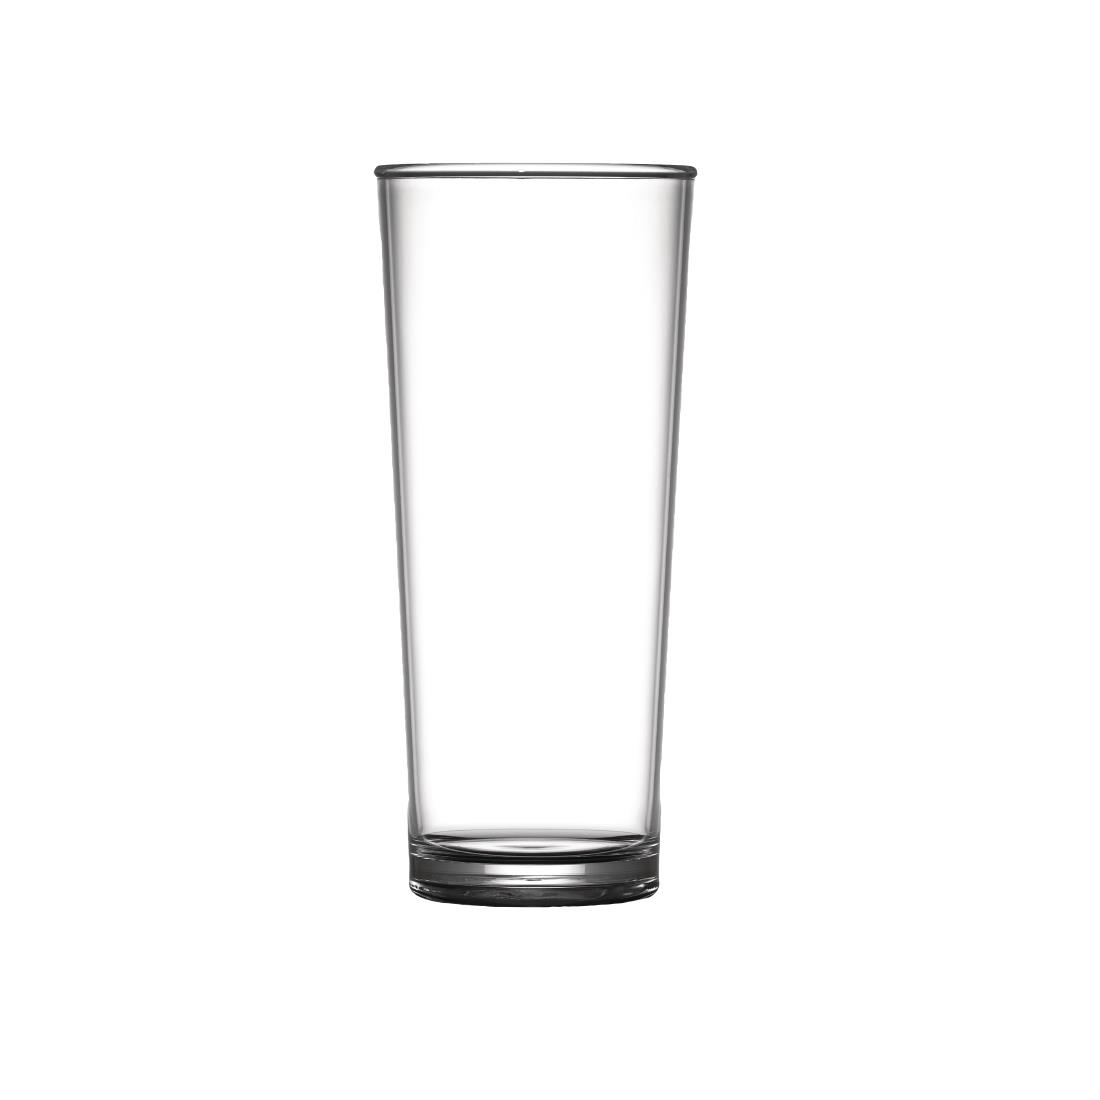 Image of BBP Polycarbonate Elite Pint Glass CE 20oz (Pack of 24) Pack of 24